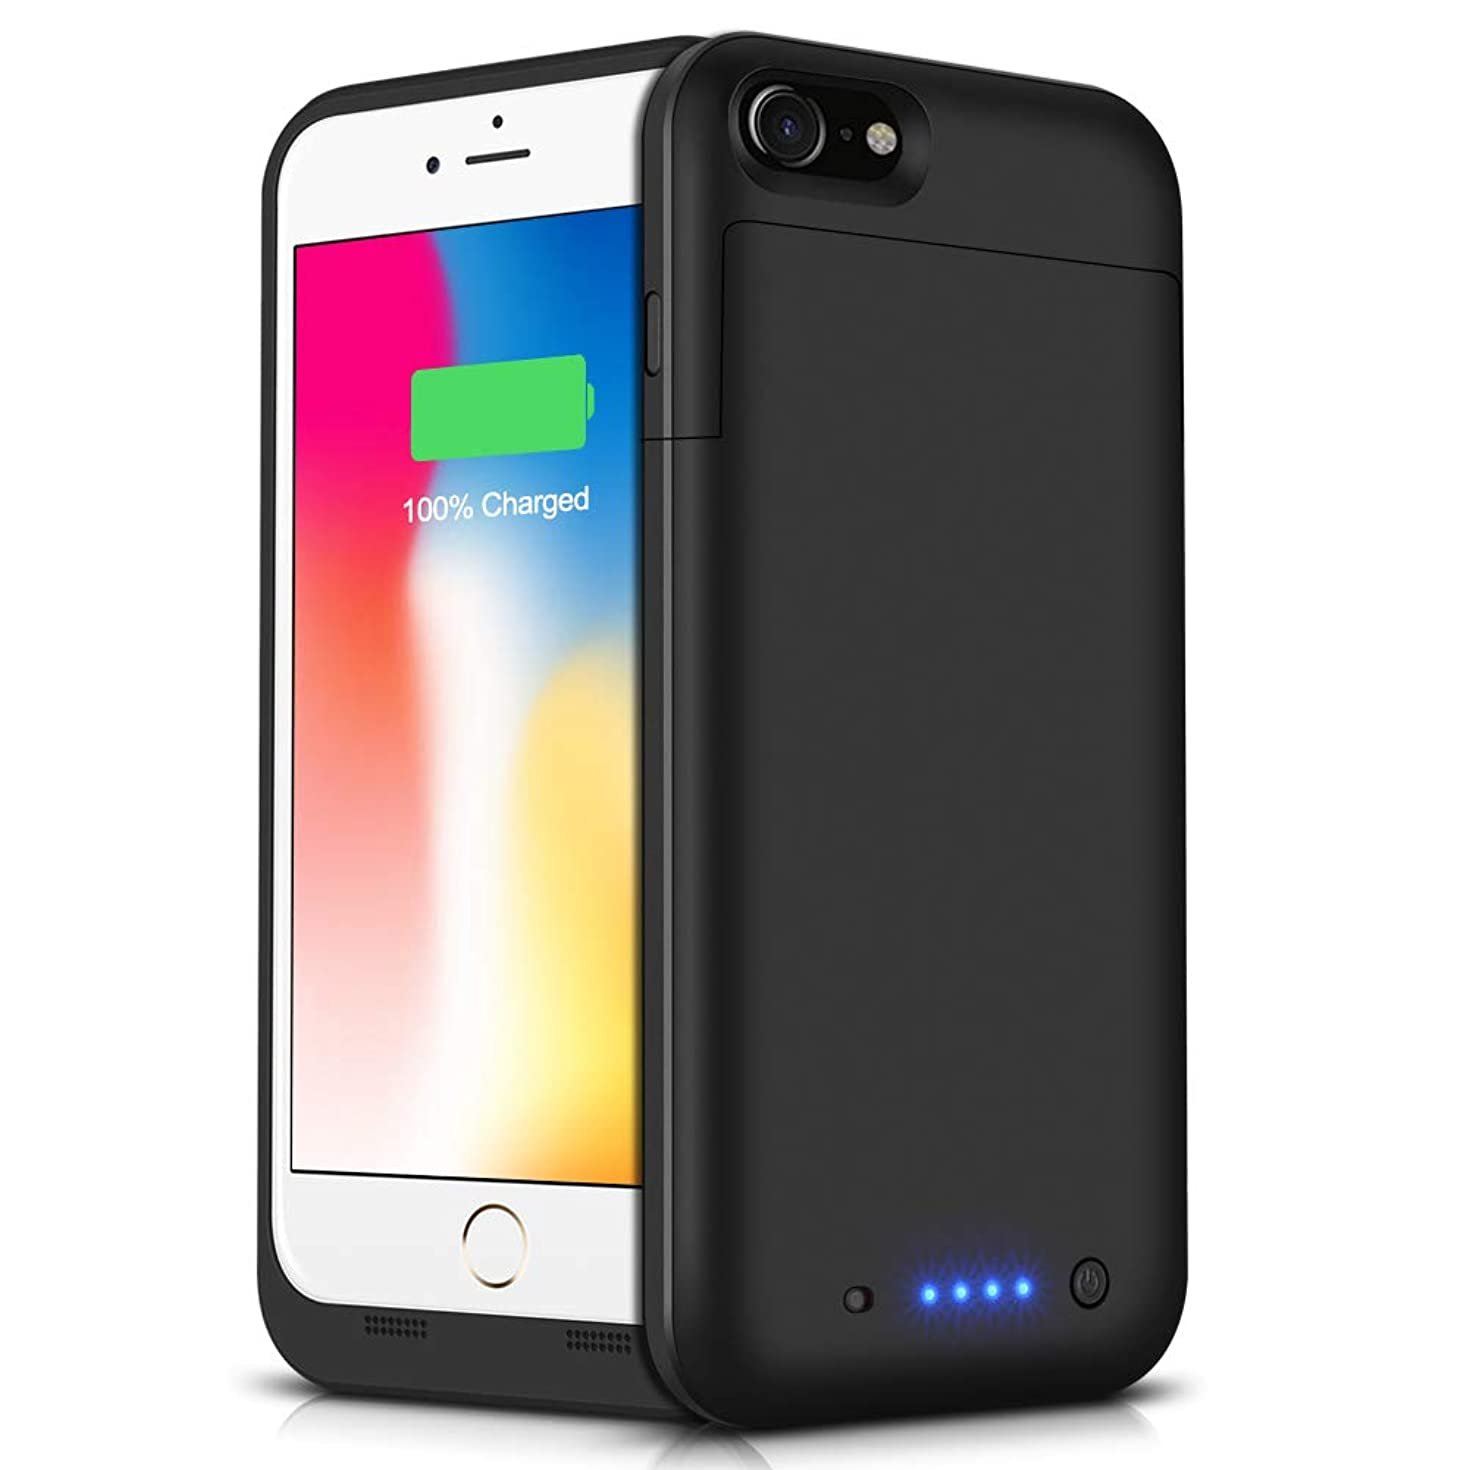 Battery Case for iPhone 6s Plus/6 Plus, 6800mAh Portable Protective Power Charging Case Compatible with iPhone 6 Plus/6s Plus (5.5 inch) Rechargeable Extended Battery Charger Case – Black